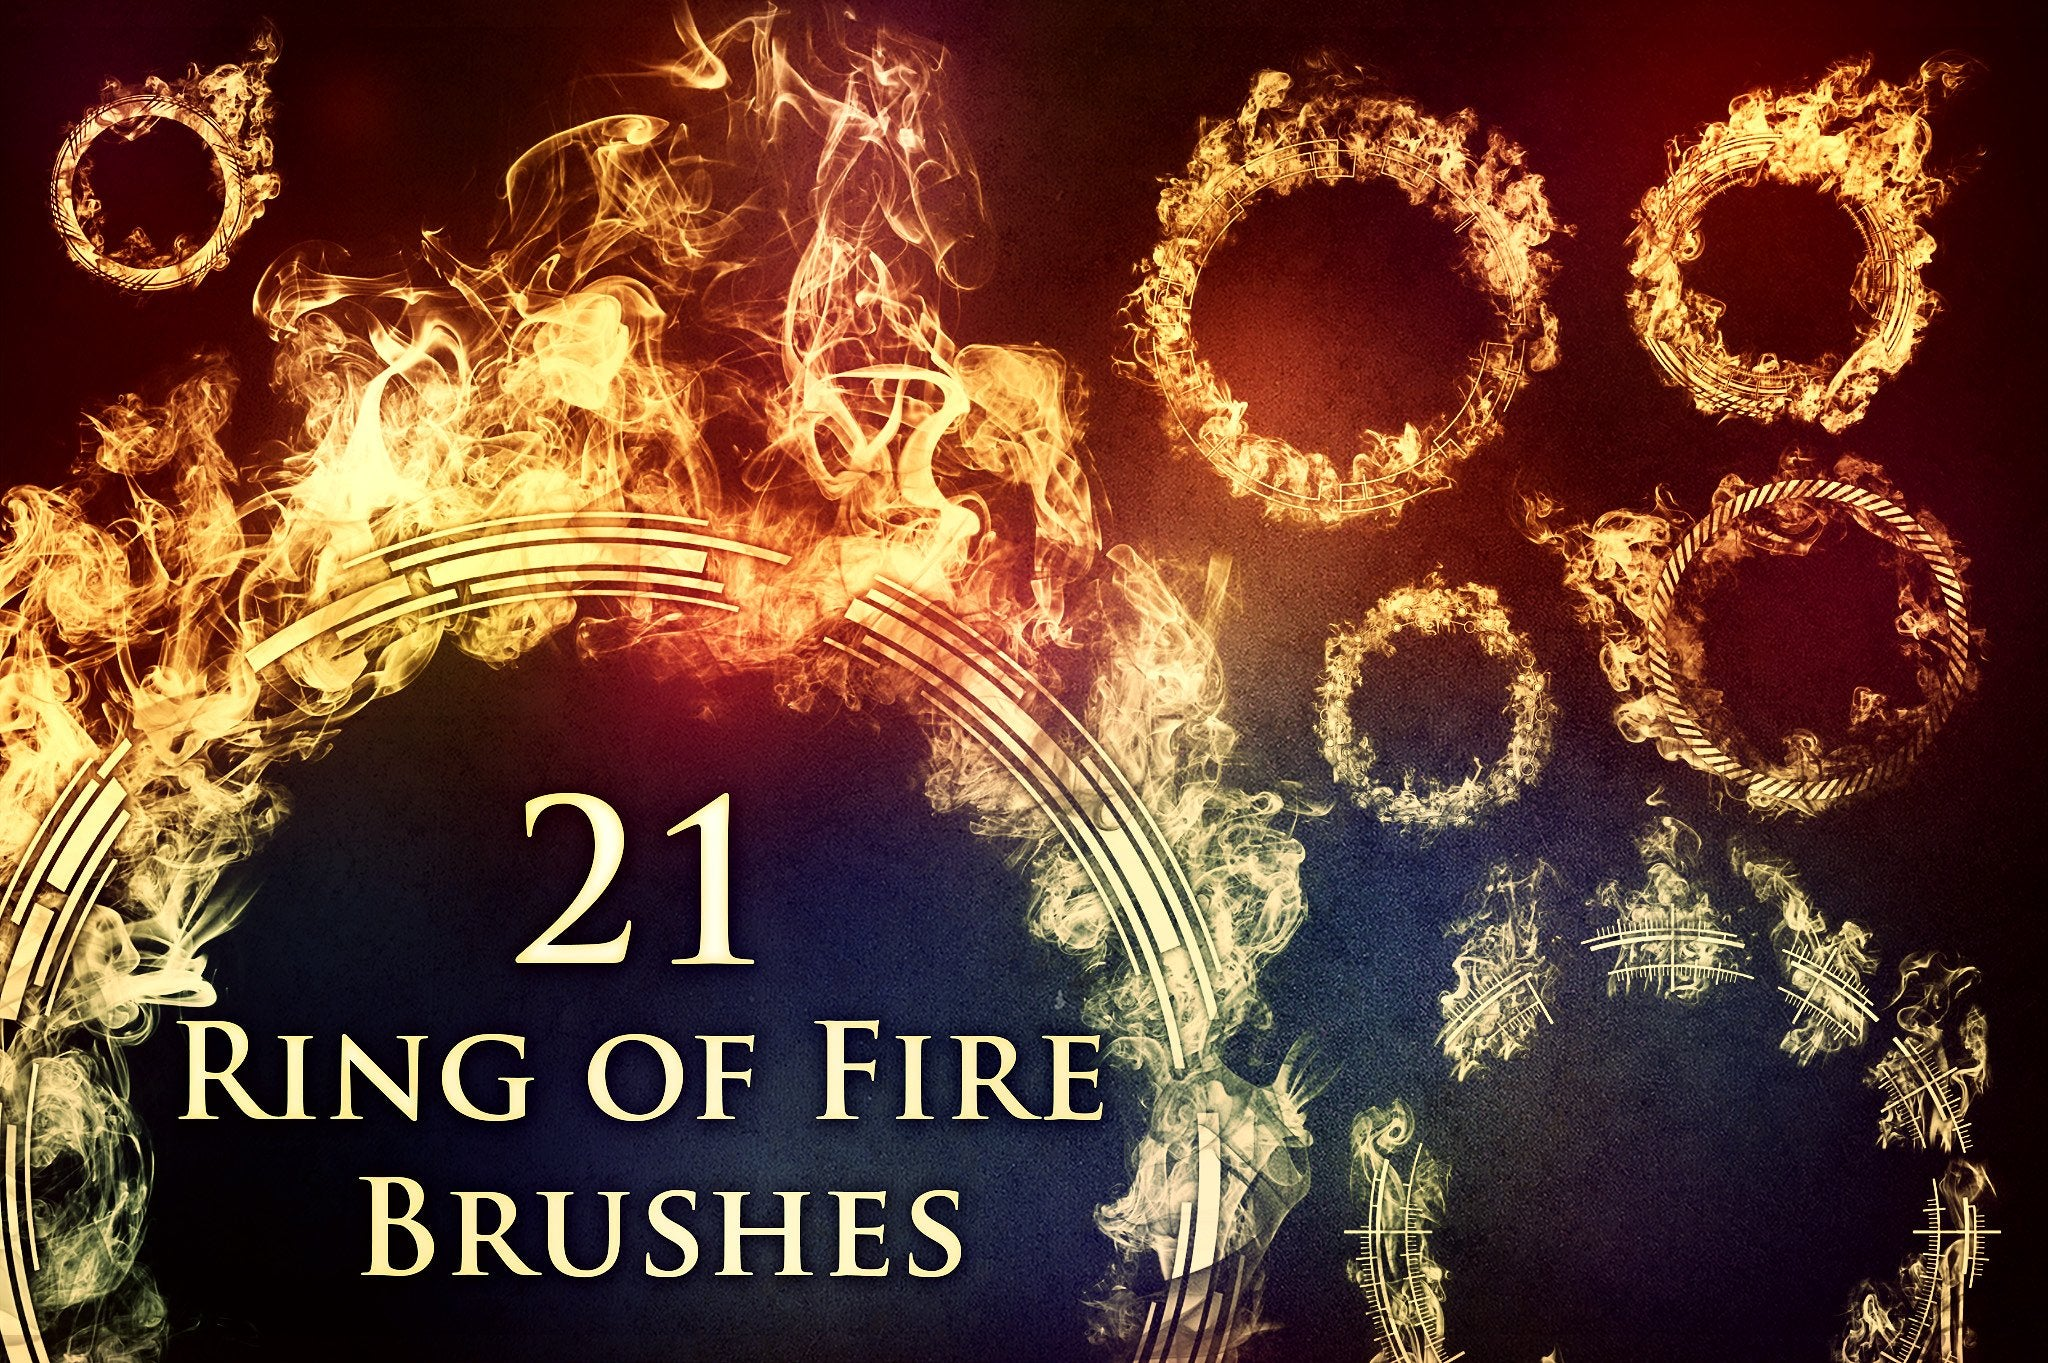 The Massive Bundle Of 2500+ Photoshop Brushes-Add-Ons-Artixty